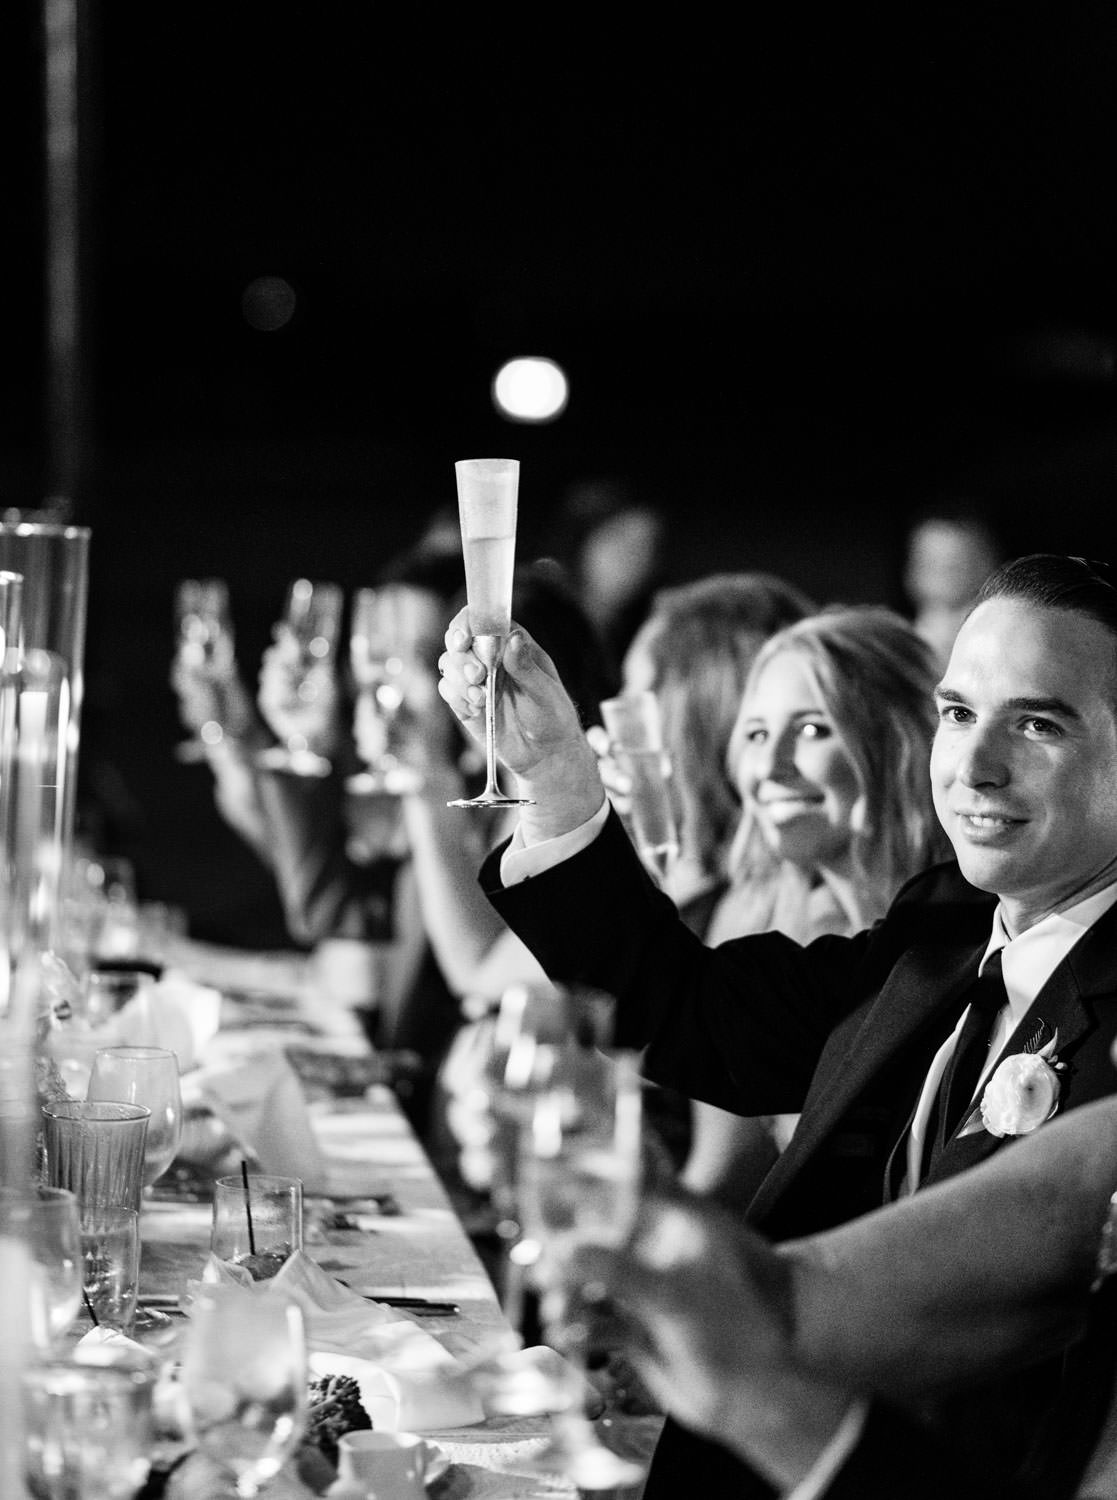 Reception photo of bride and groom during toasts in black and white. Del Mar Country Club Wedding by Cavin Elizabeth Photography